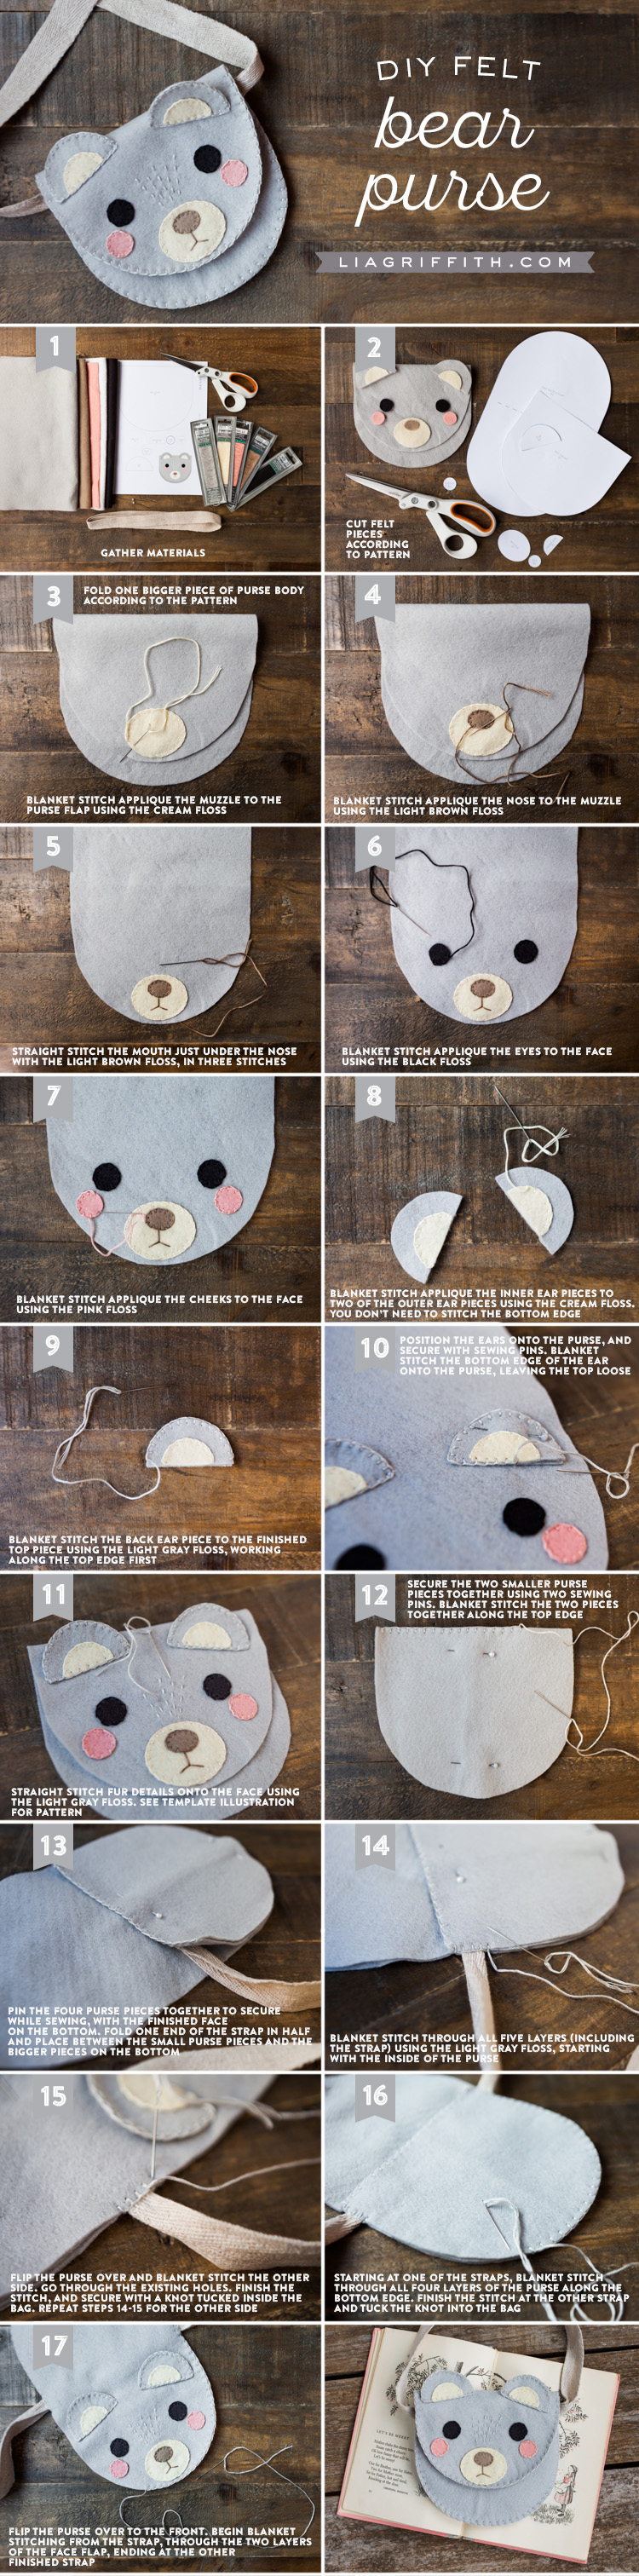 Felt Bag Tutorial